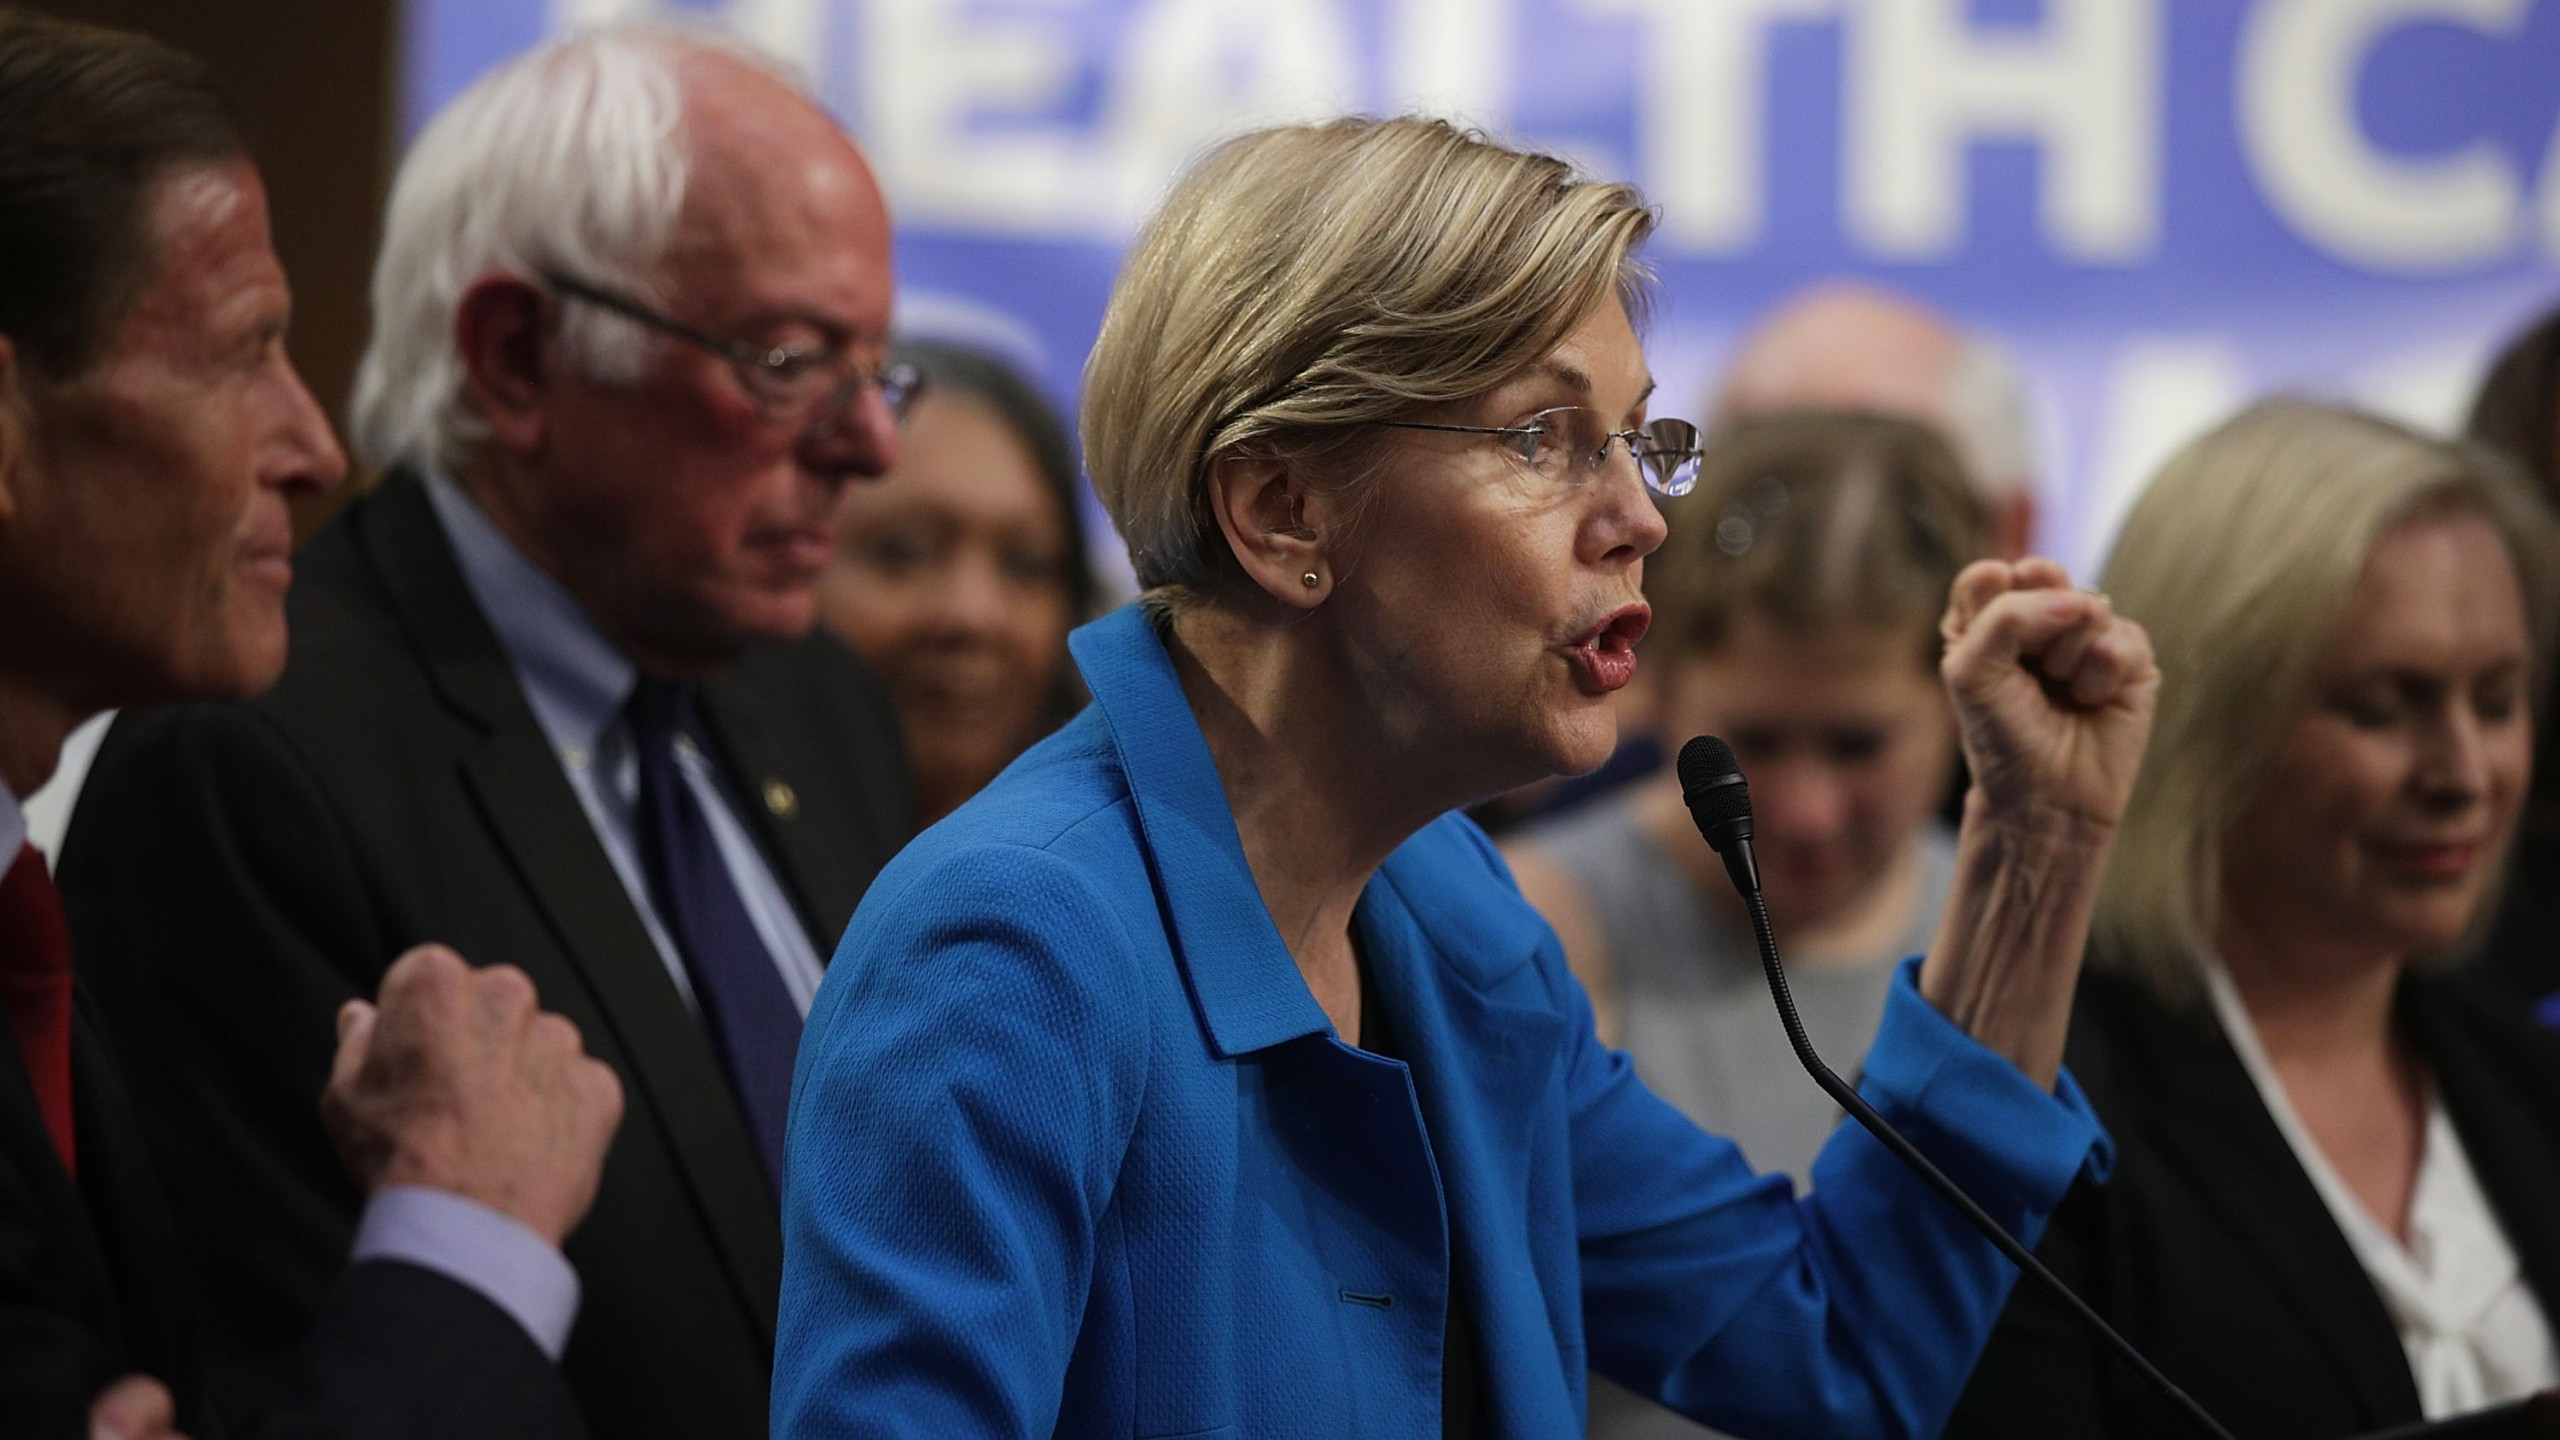 Sen. Elizabeth Warren, D-Mass., seen speaking during an event September 13, 2017 on Capitol Hill, has introduced a bill that force Equifax and its competitors to provide free credit freezing and unfreezing in the wake of the massive Equifax data breach. (Credit: Alex Wong/Getty Images)